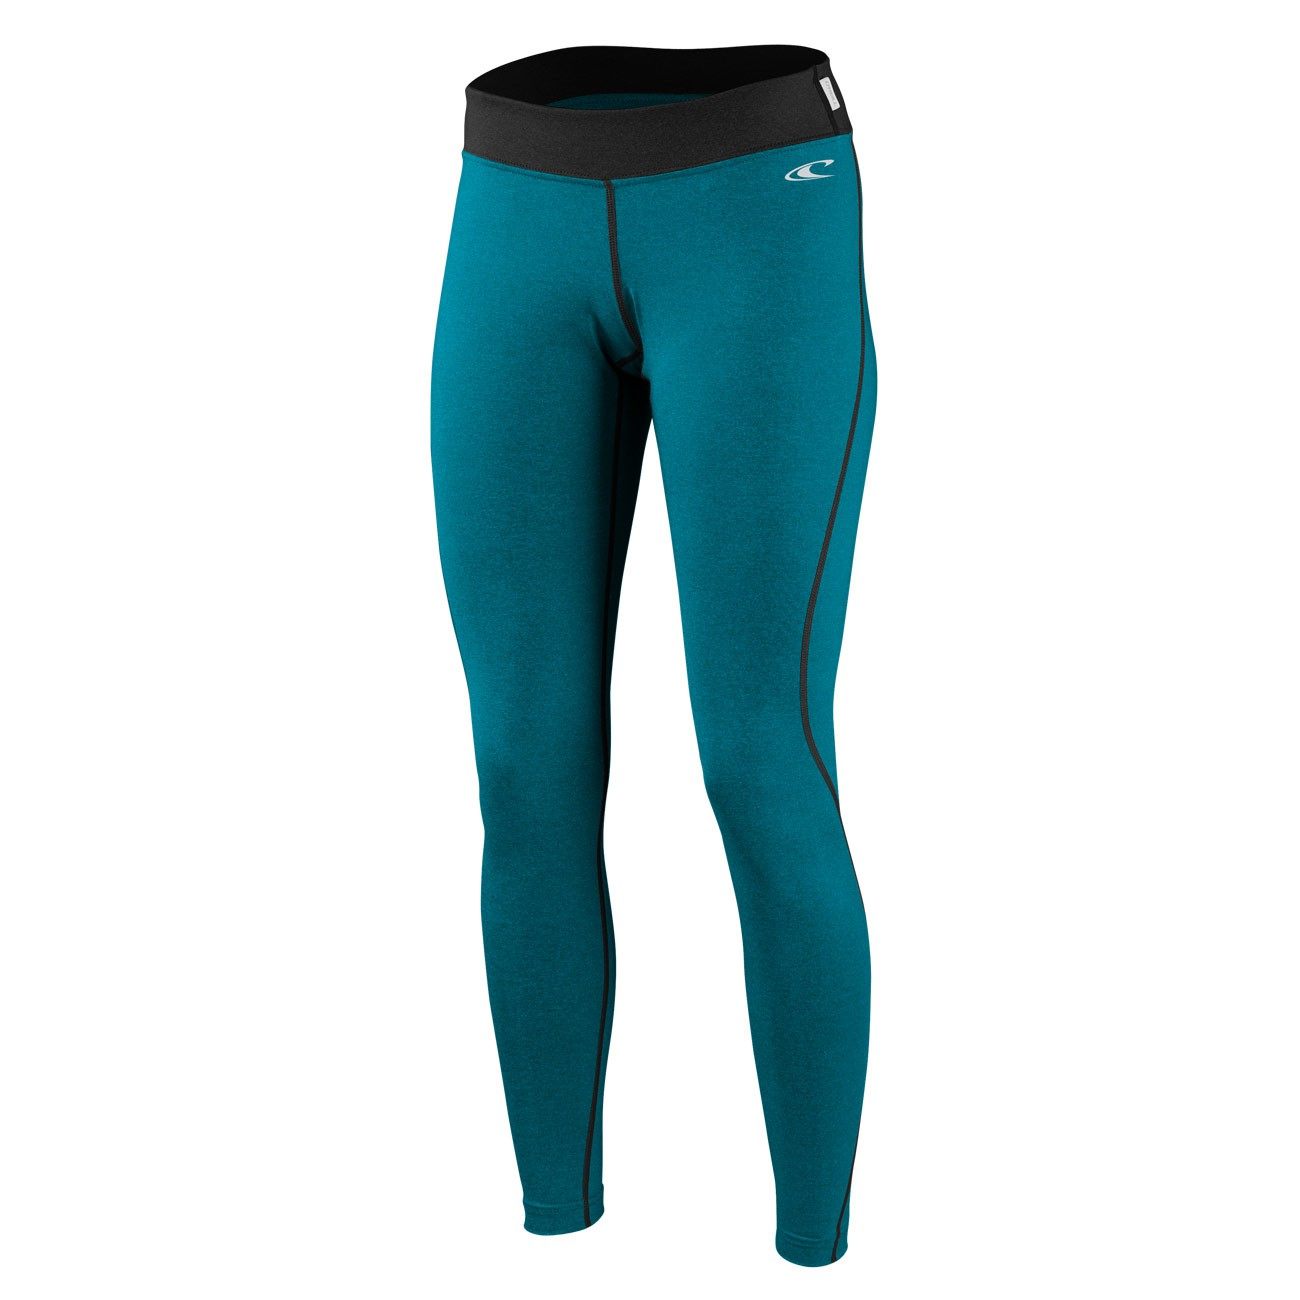 Lycra O'Neill Wms O'zone Comp Tights light teal/black/black